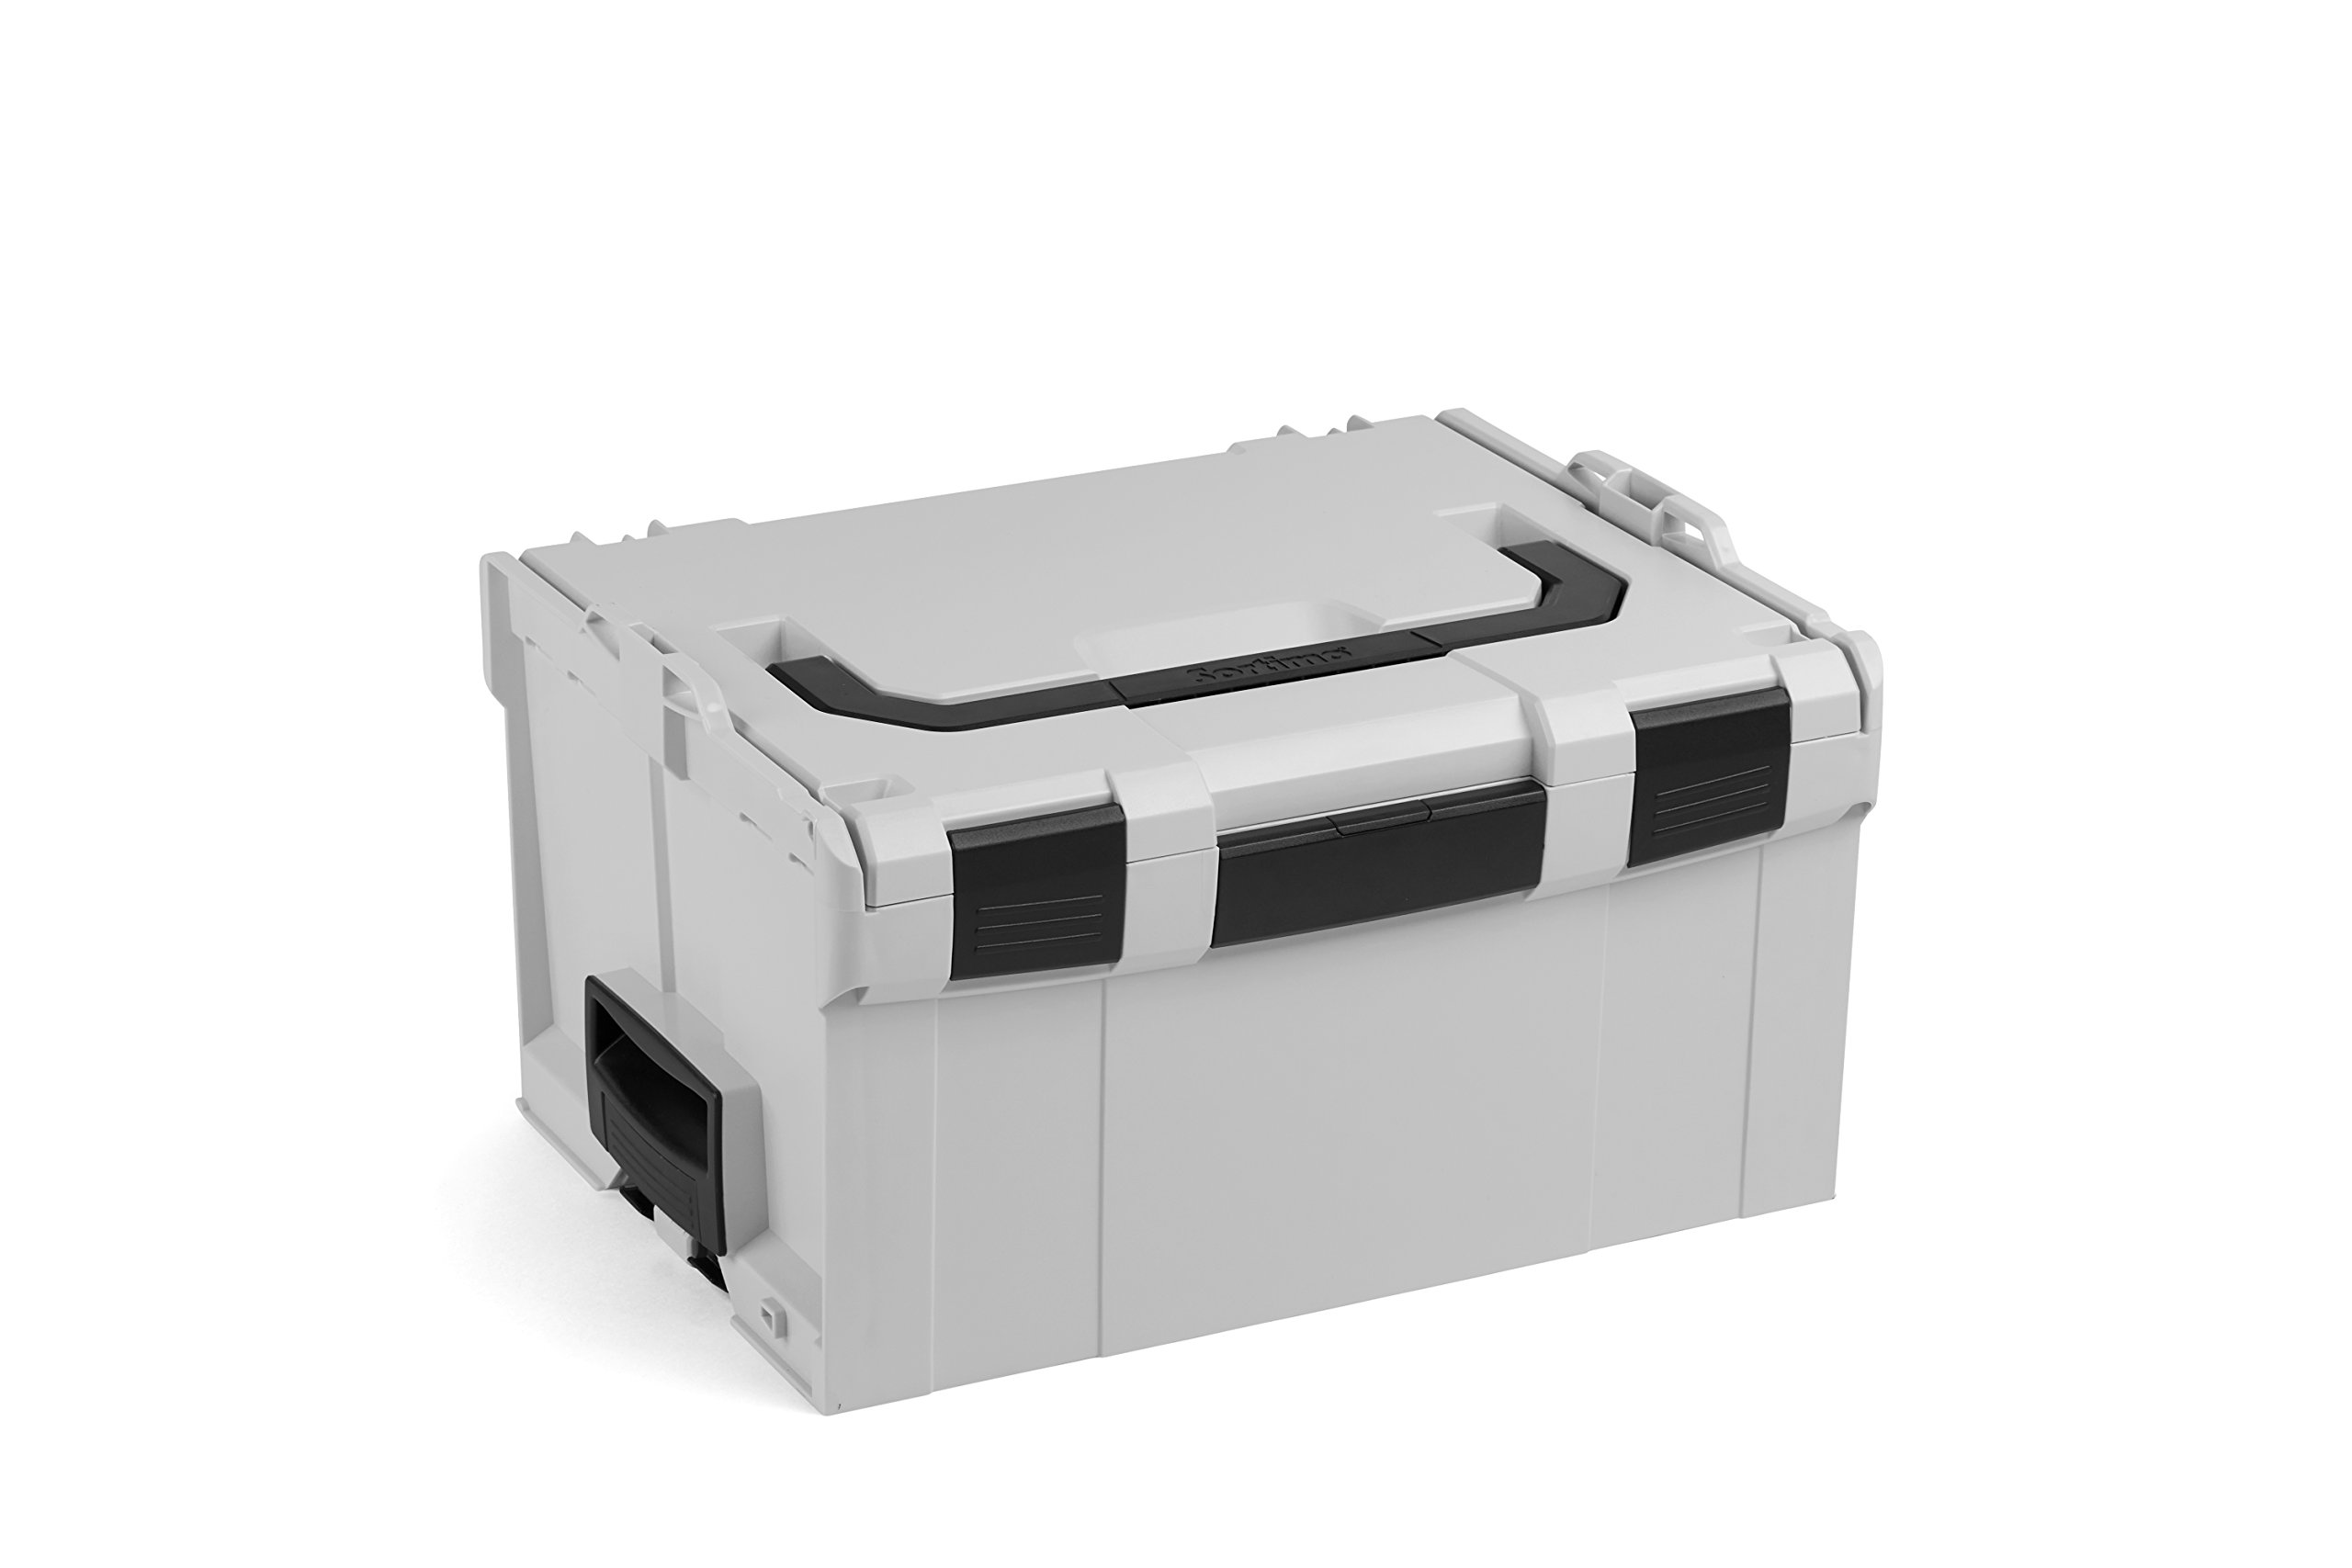 Tool Box Organizer | SORTIMO BOSCH Tools Box L-Boxx 238 Size 3 light Grey | Professional Empty Portable Tool Bag | Tough Tool Box Latches and Locks